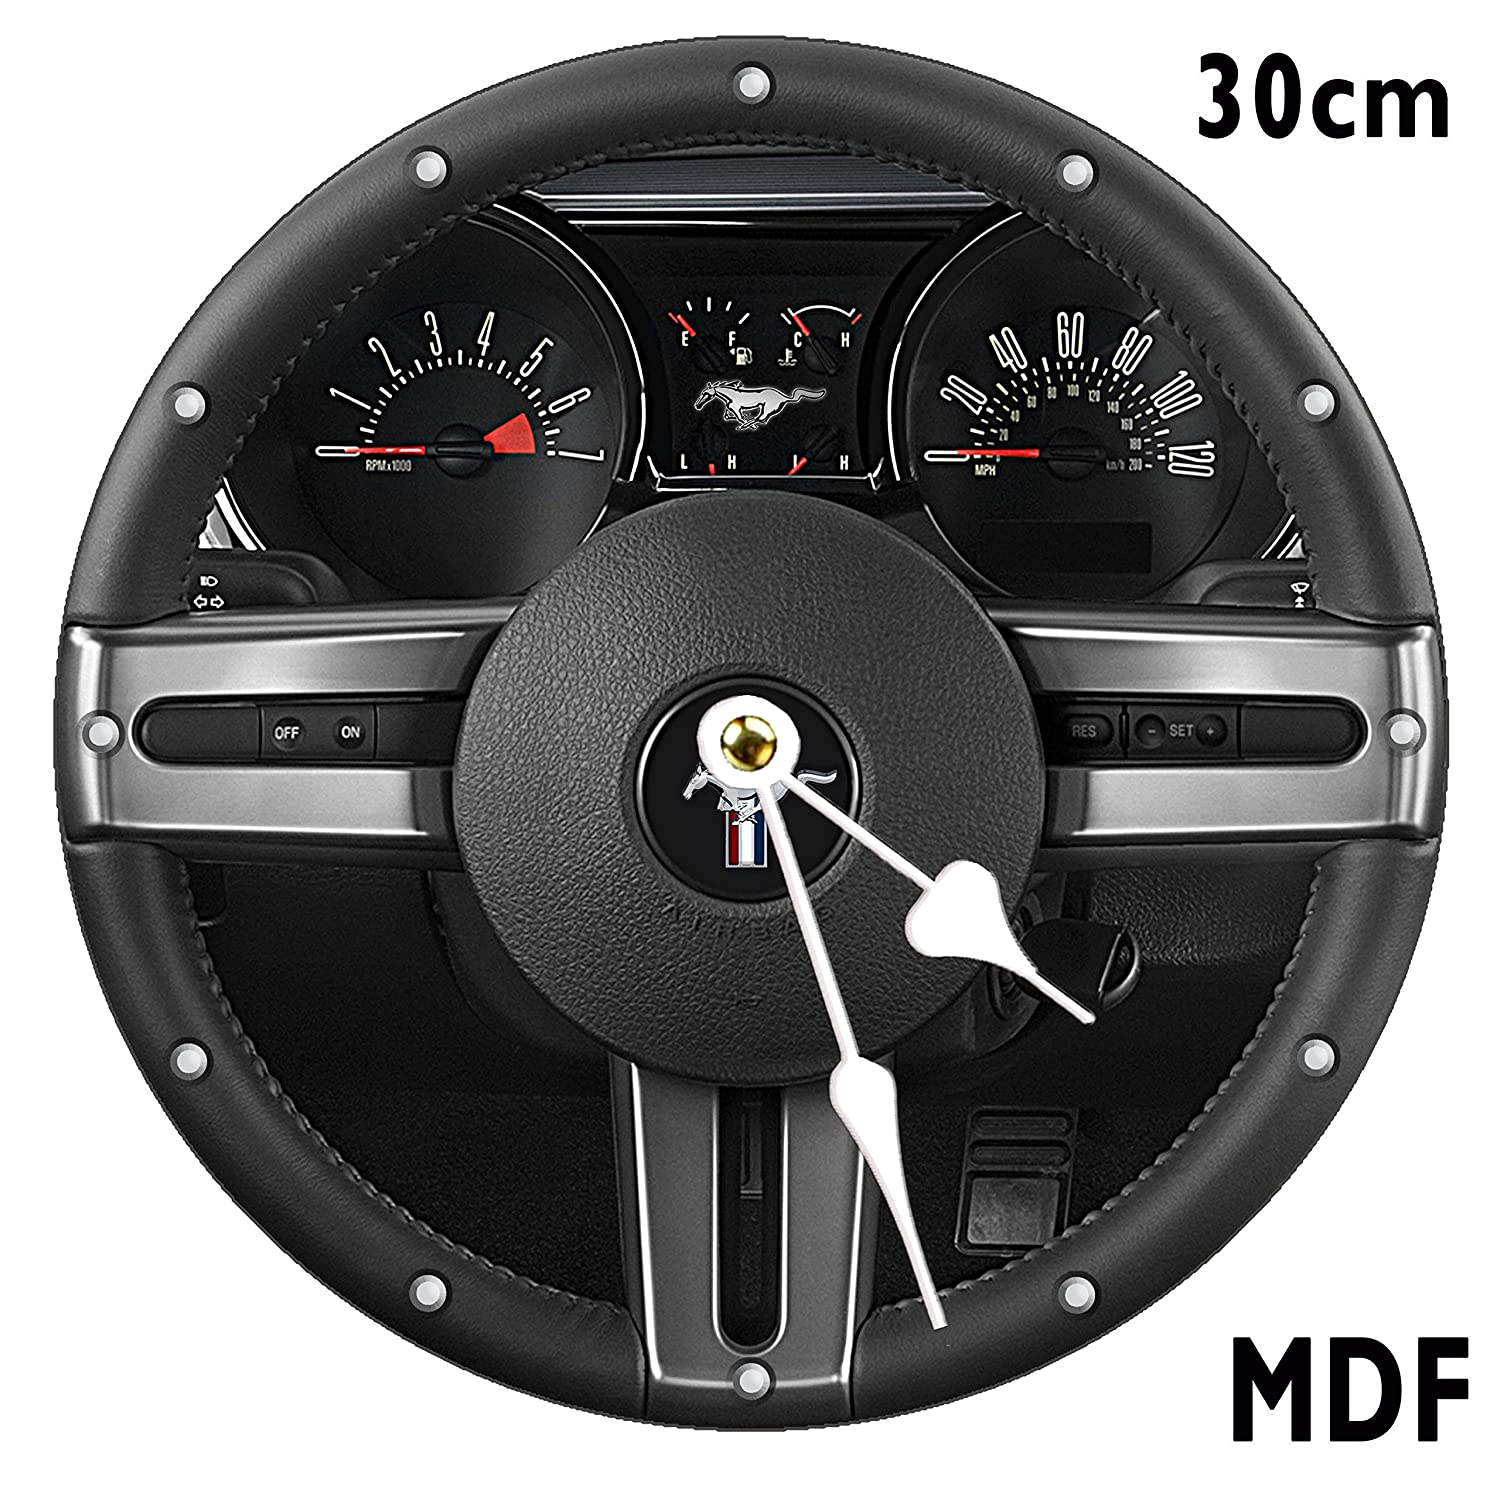 FORD MUSTANG Wheel Wall Clock Large 30CM MDF CAN BE PERSONALISED SGH SERVICES